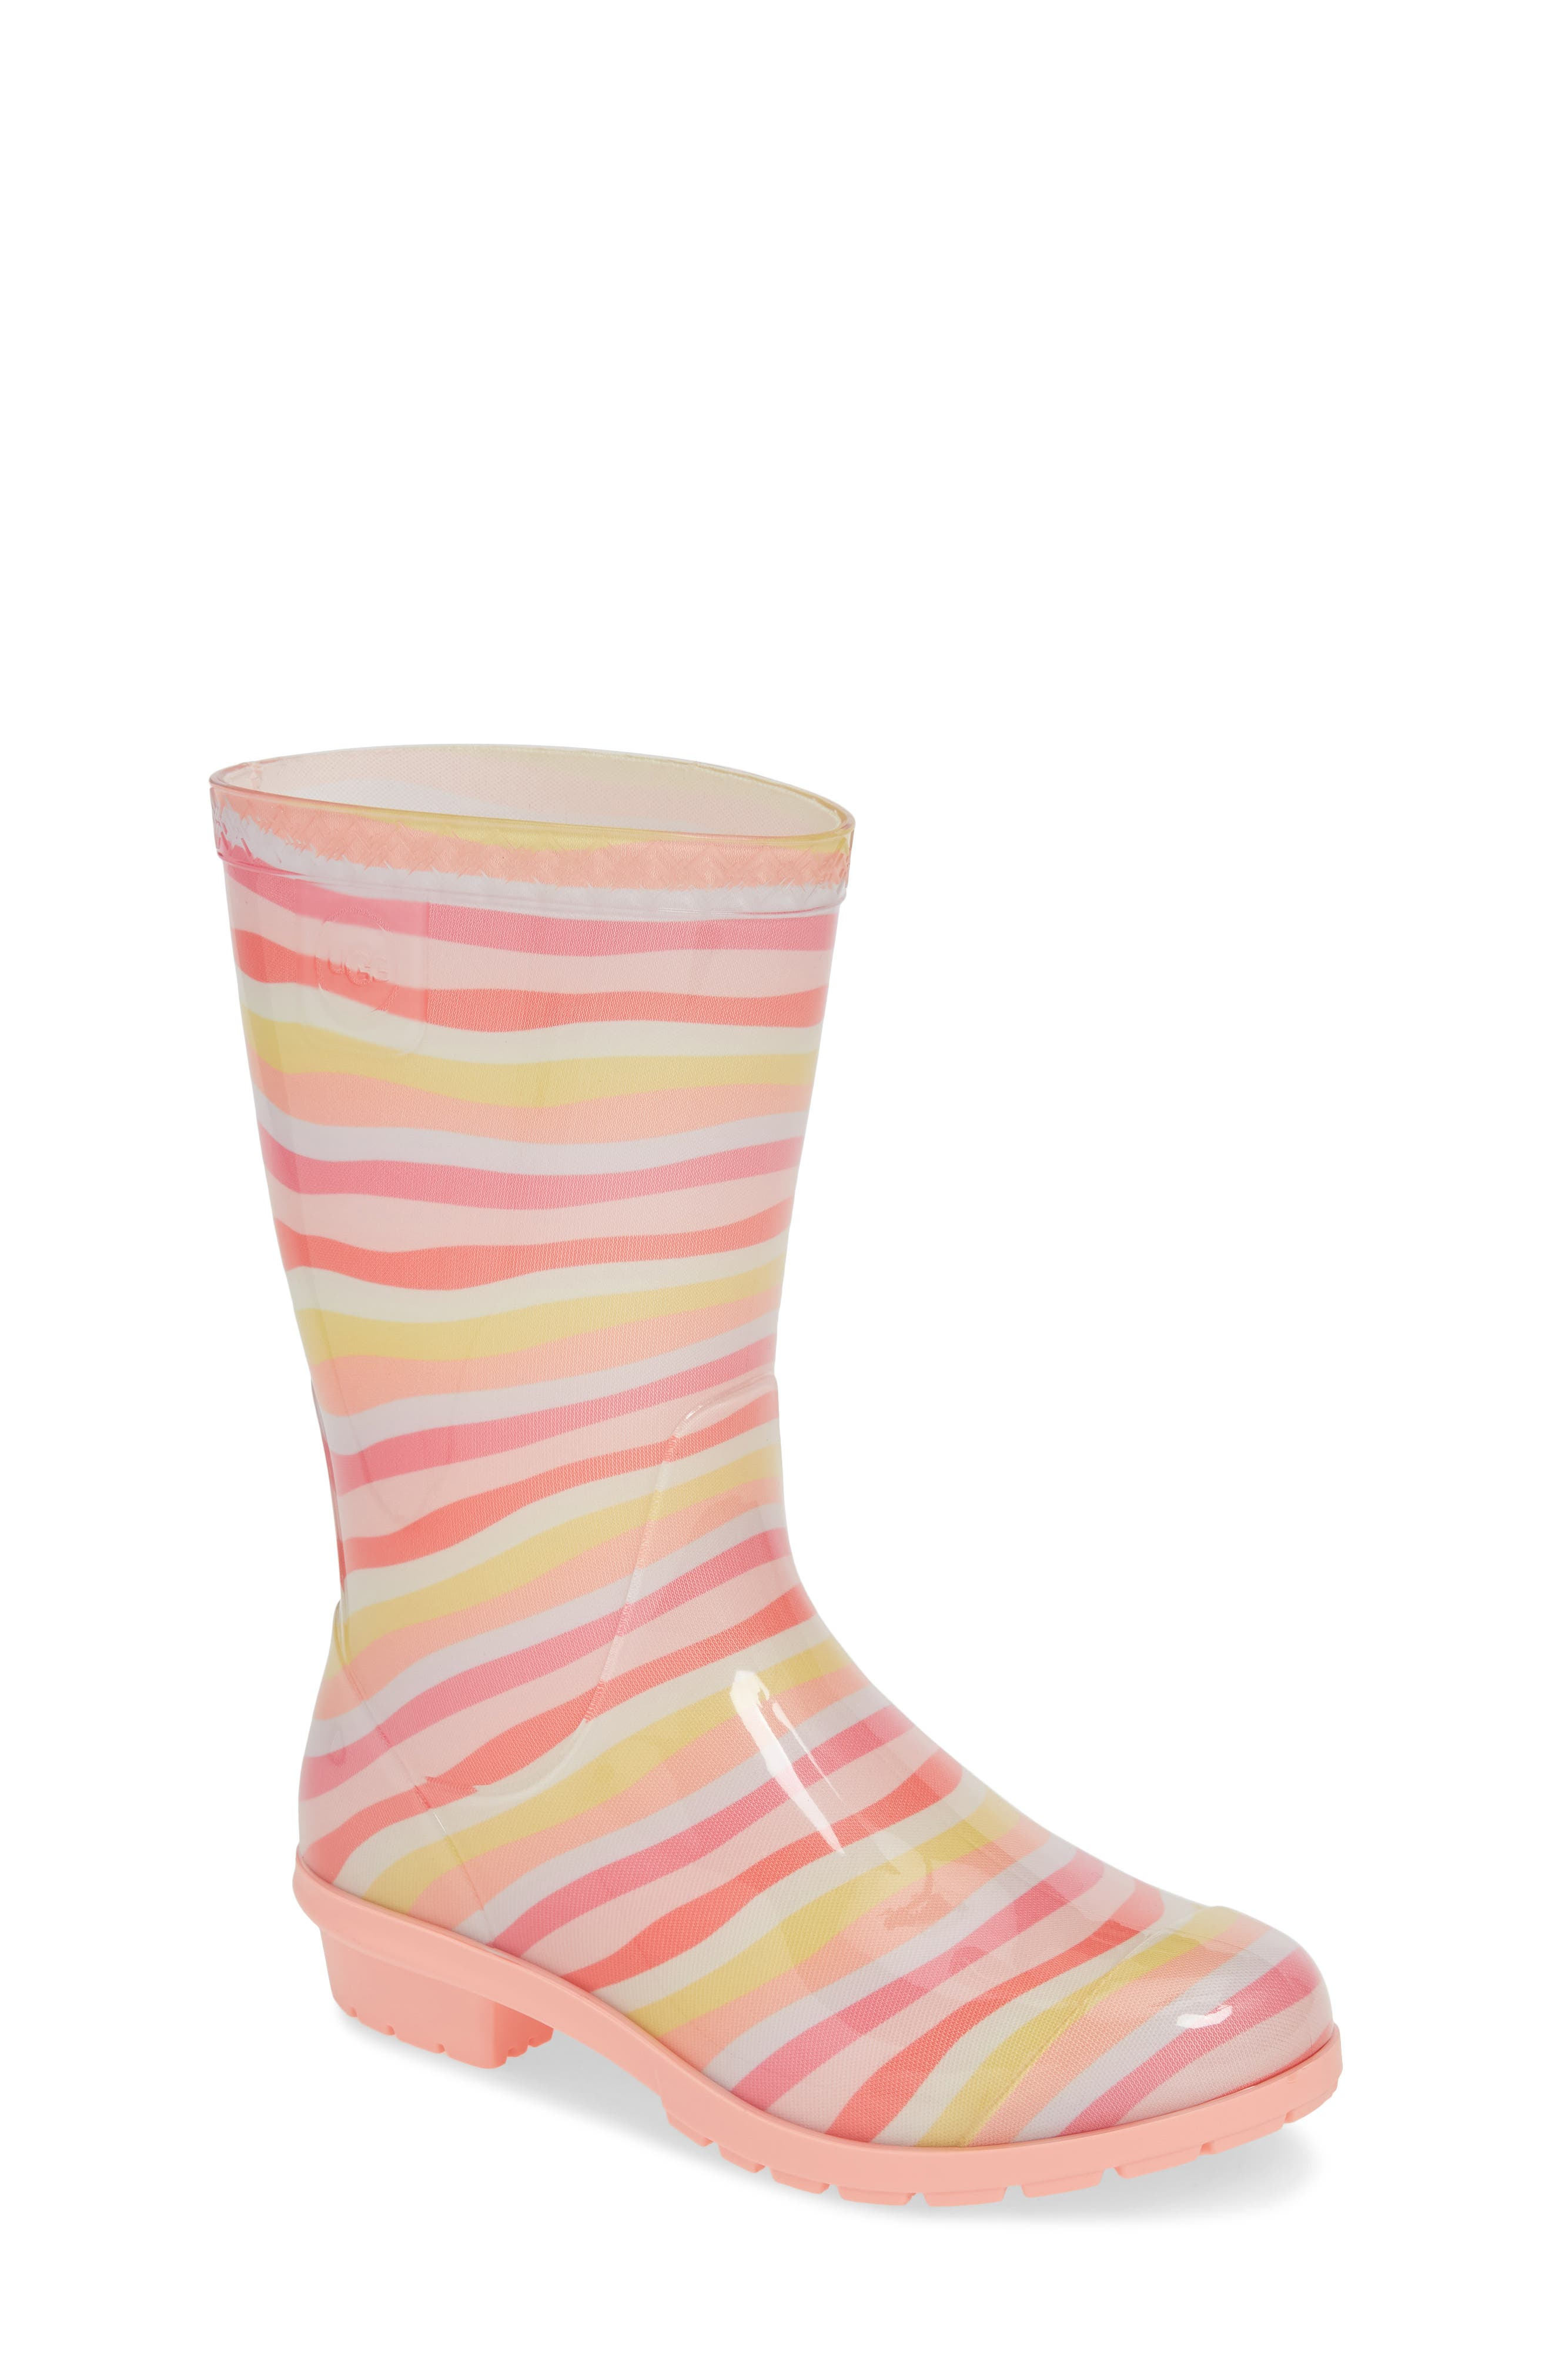 UGG<SUP>®</SUP> Raana Waterproof Rain Boot, Main, color, RAINBOW